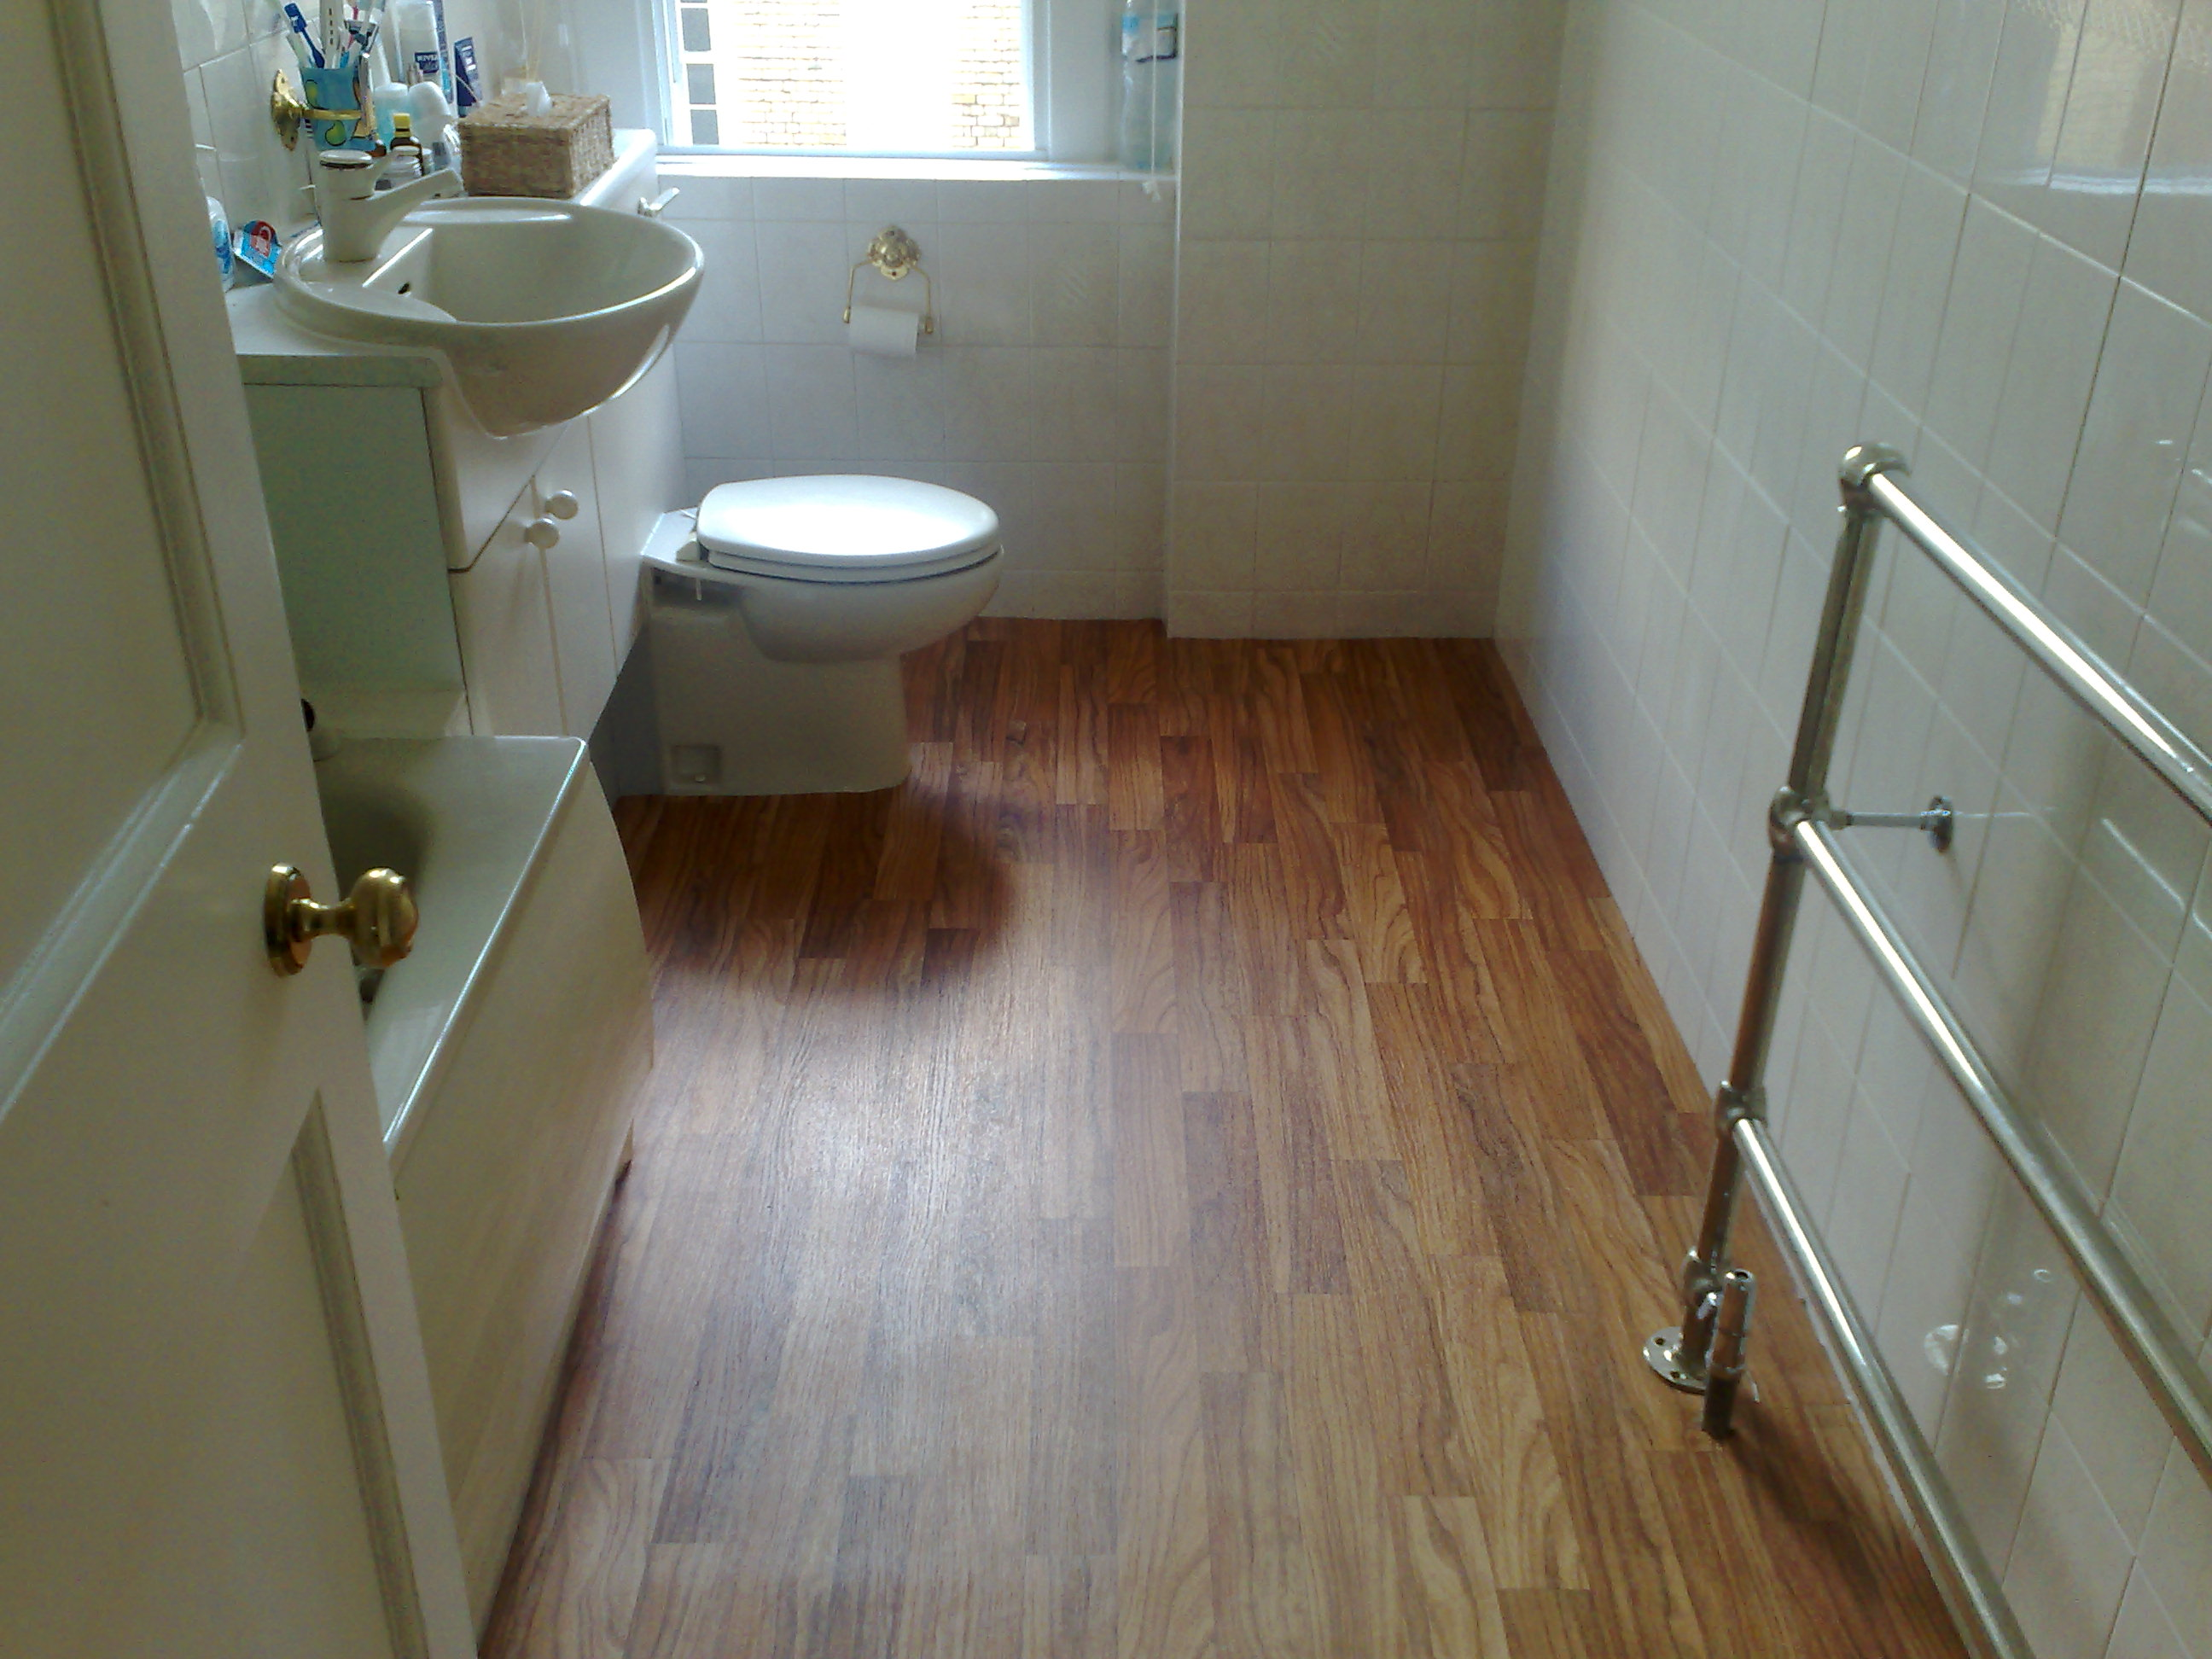 Tiled Bathroom Floors 30 Great Ideas And Pictures Of Self Adhesive Vinyl Floor Tiles For